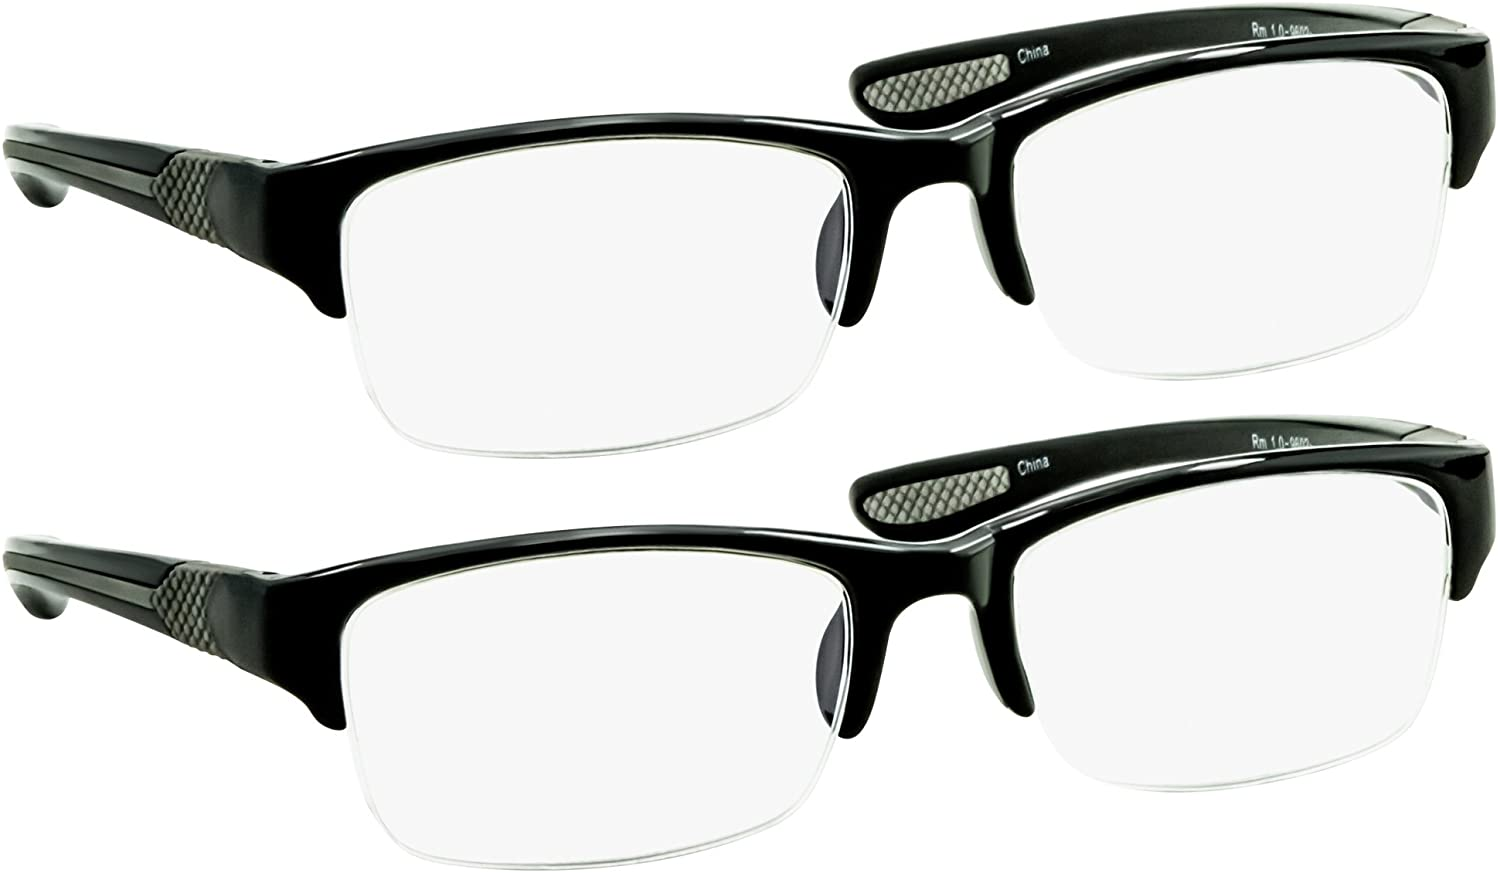 Black Computer Reading Glasses 3.50 Protect Your Eyes Against Eye Strain, Fatigue and Dry Eyes from Digital Gear with Anti Blue Light, Anti UV, Anti Glare, and are Anti Reflective